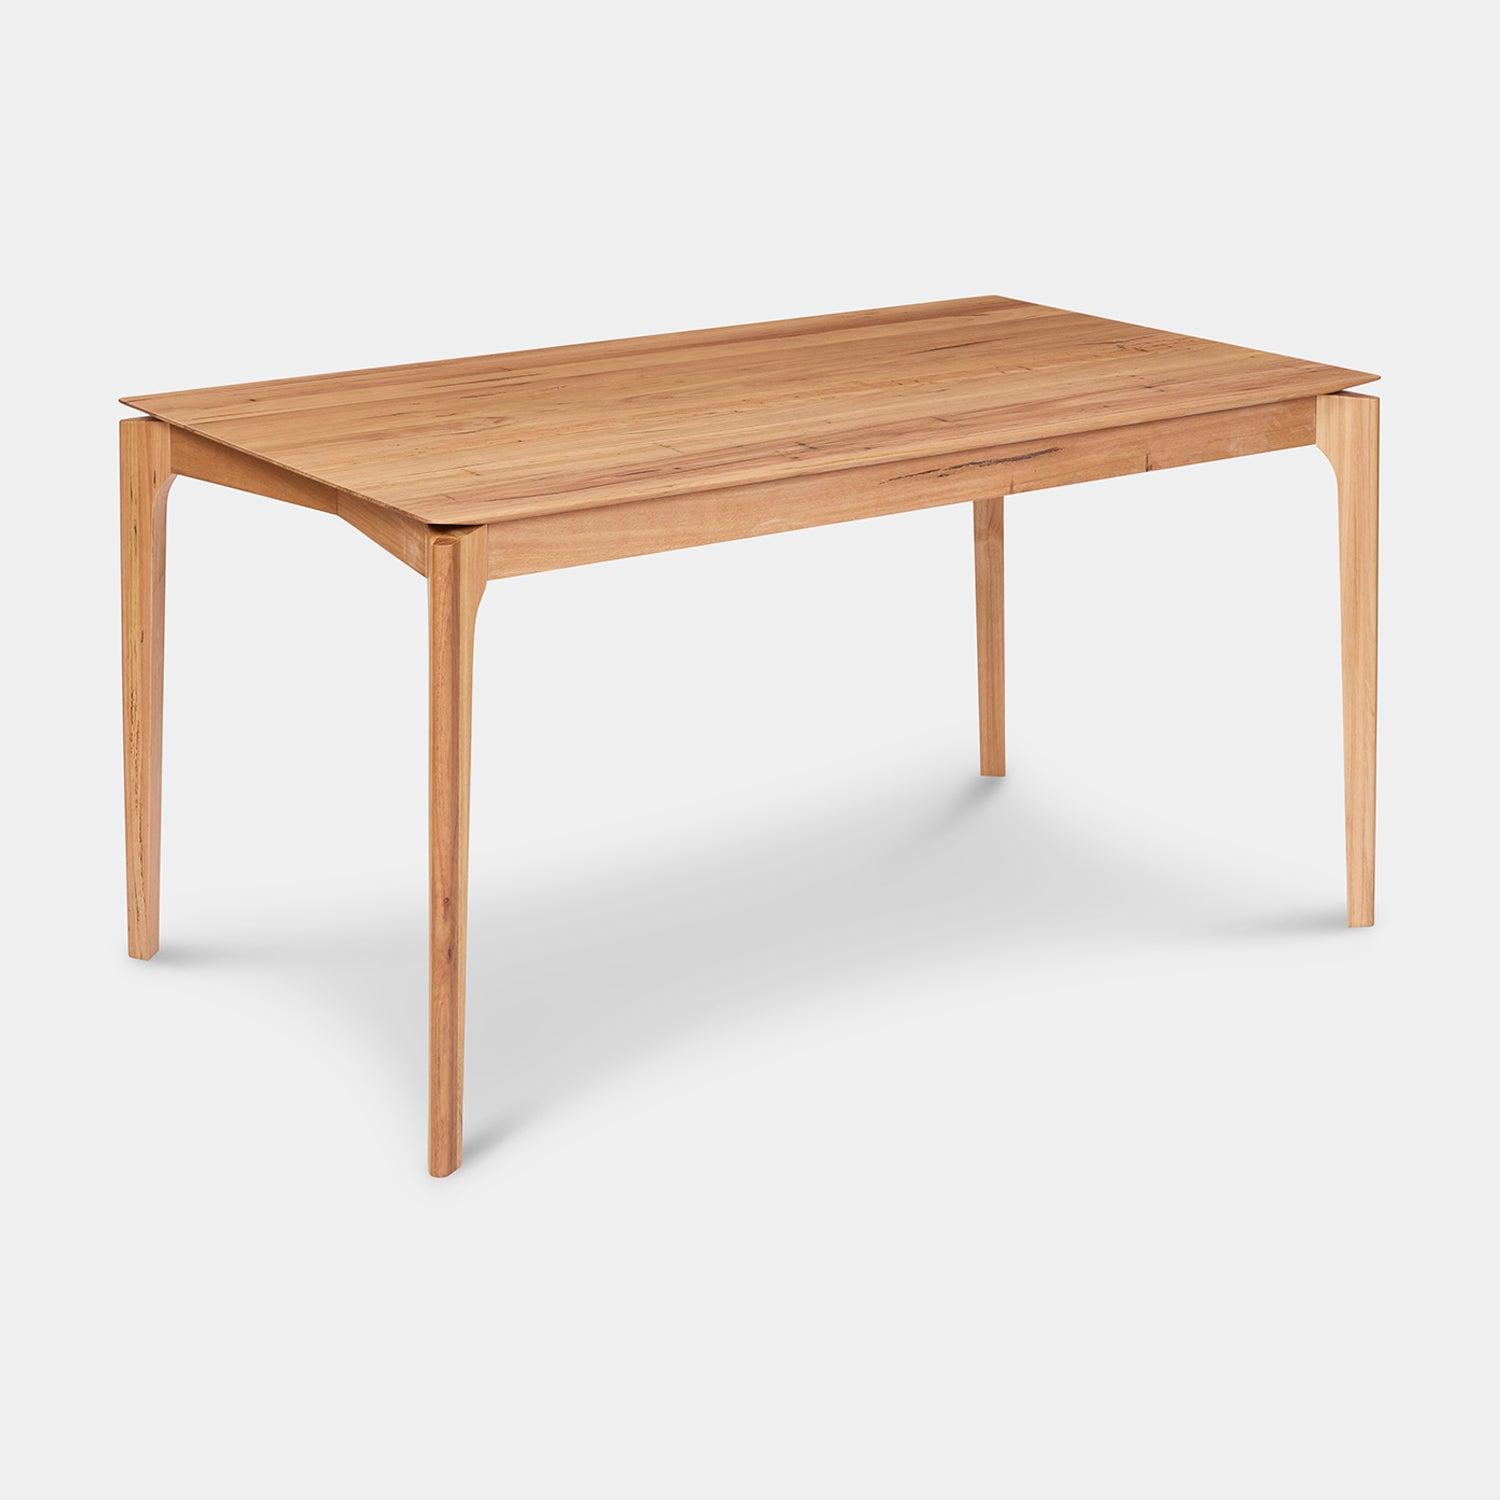 Messmate-Fairlight-Dining-180cm-Table-r1